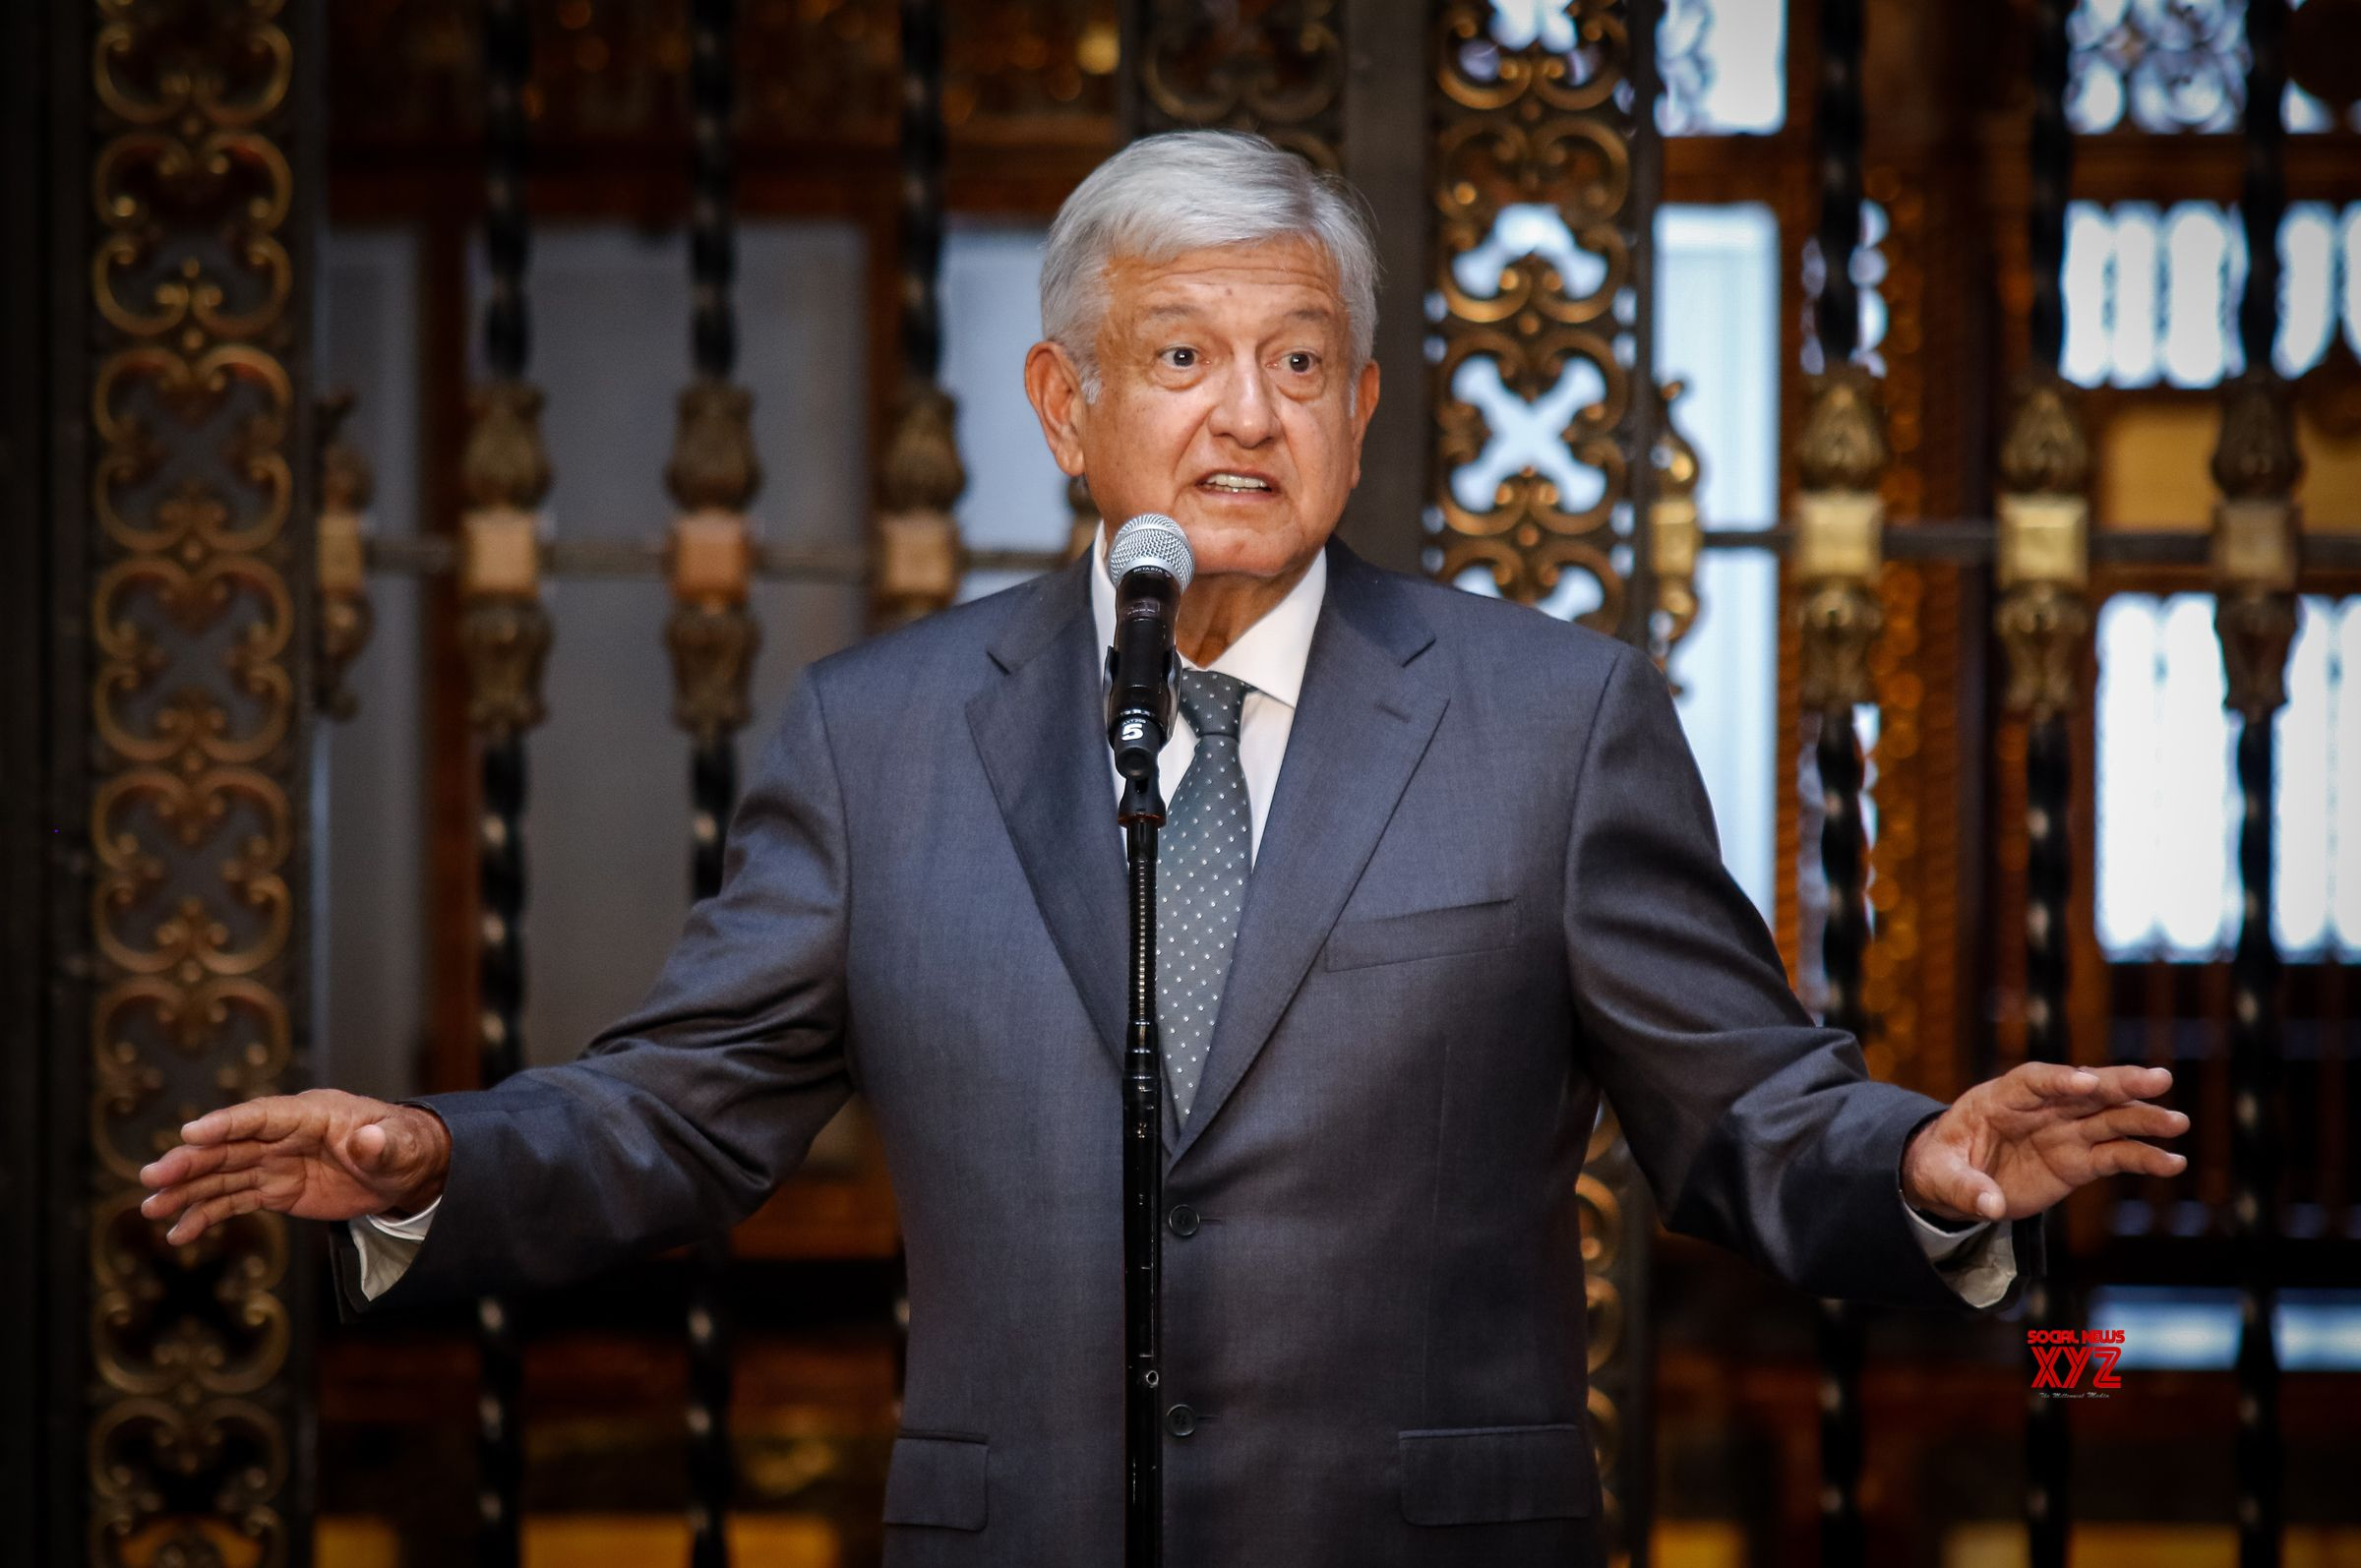 Mexico's President Responds With Amity to Trump's Hostile Tweets